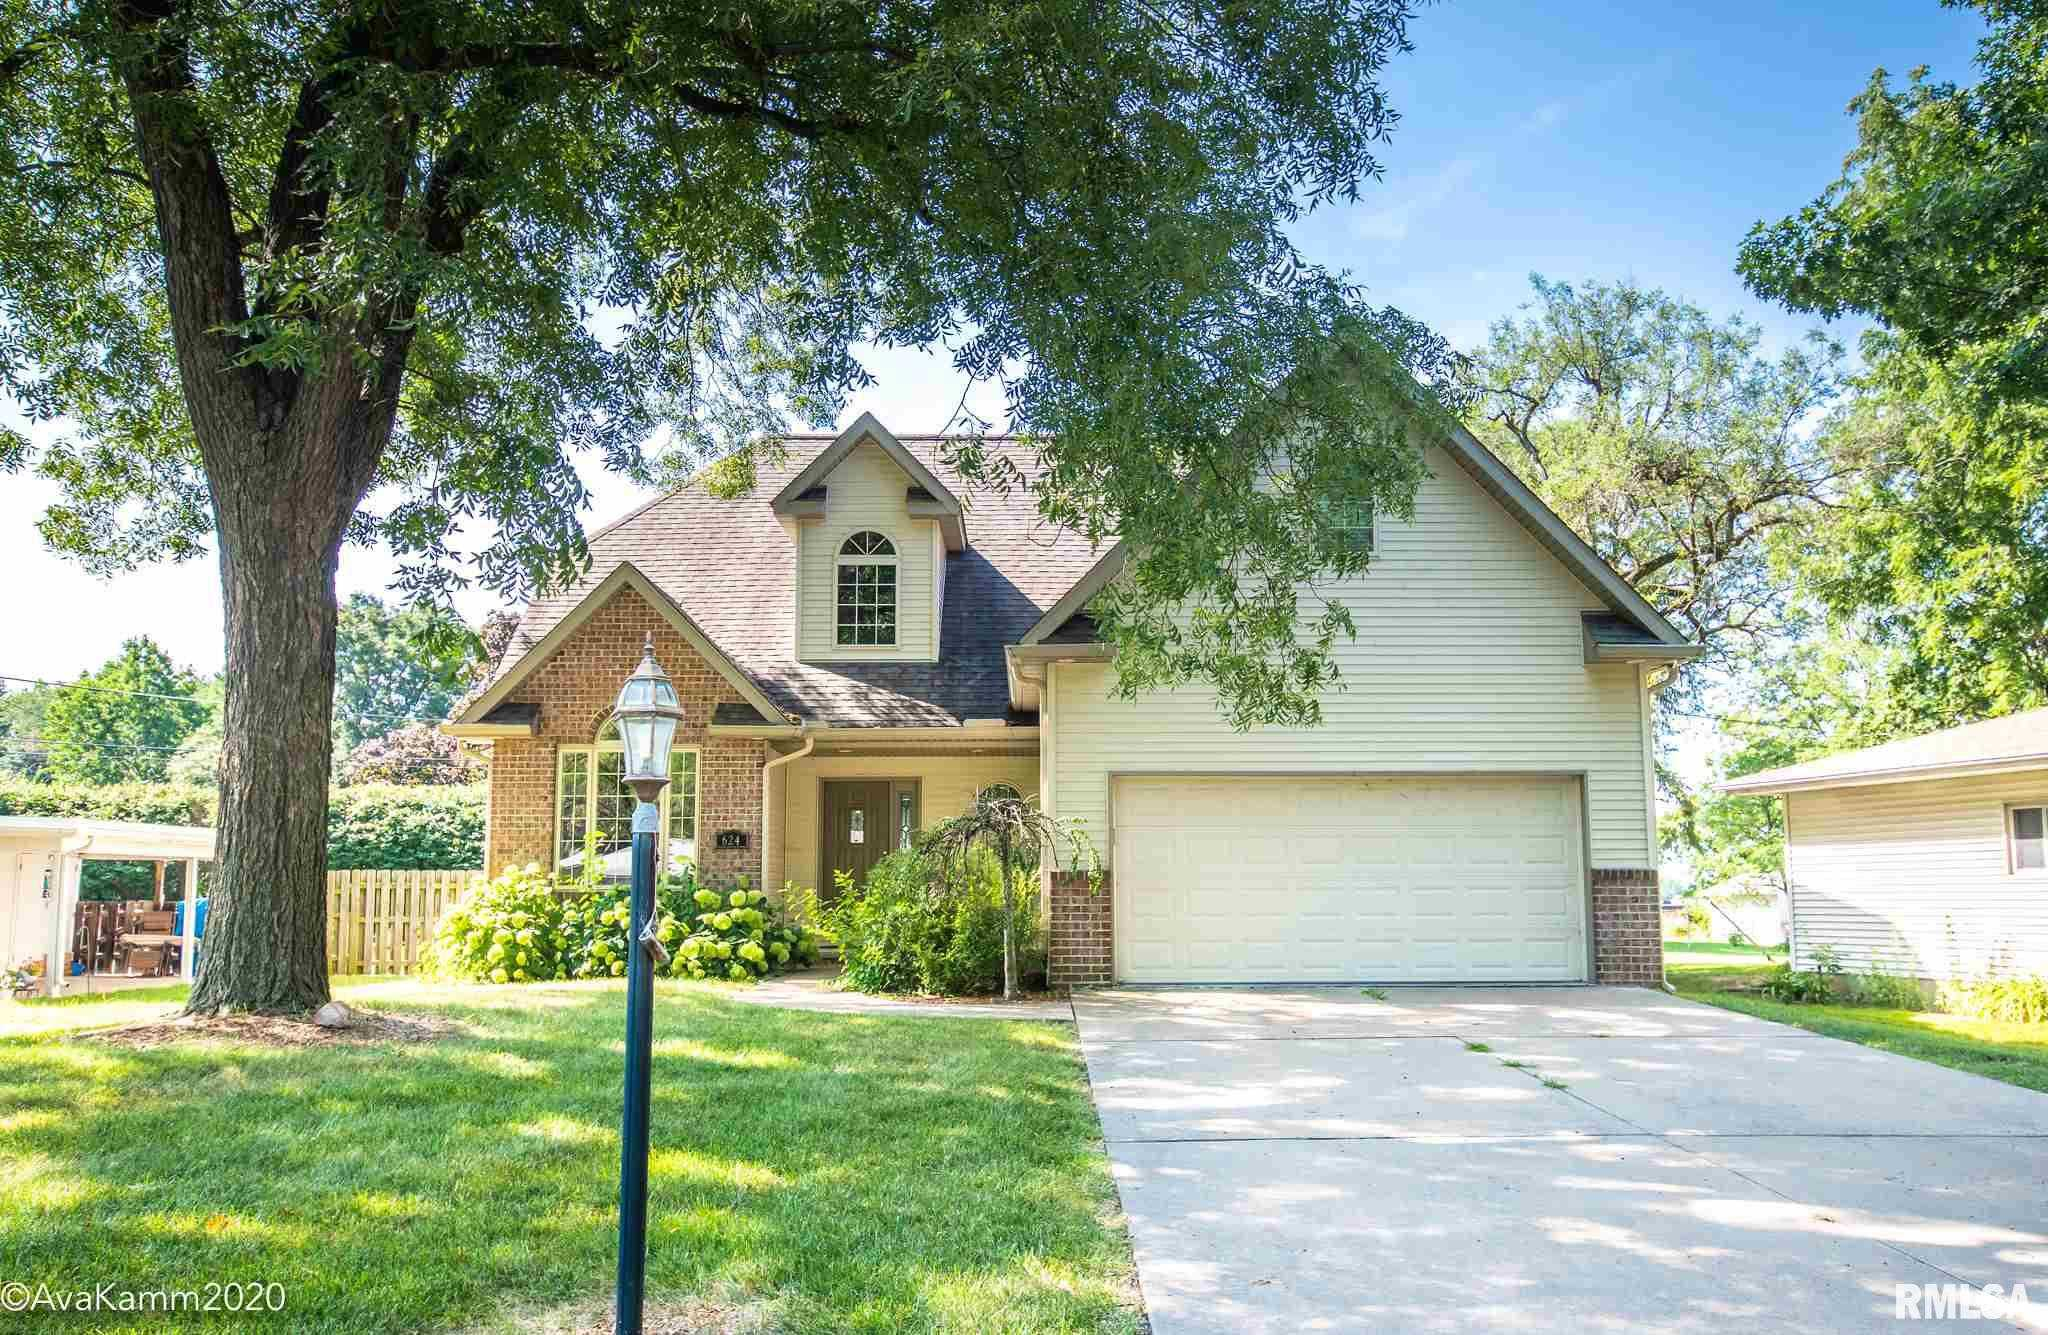 $194,900 - 4Br/3Ba -  for Sale in Webbers Gulch, Peoria